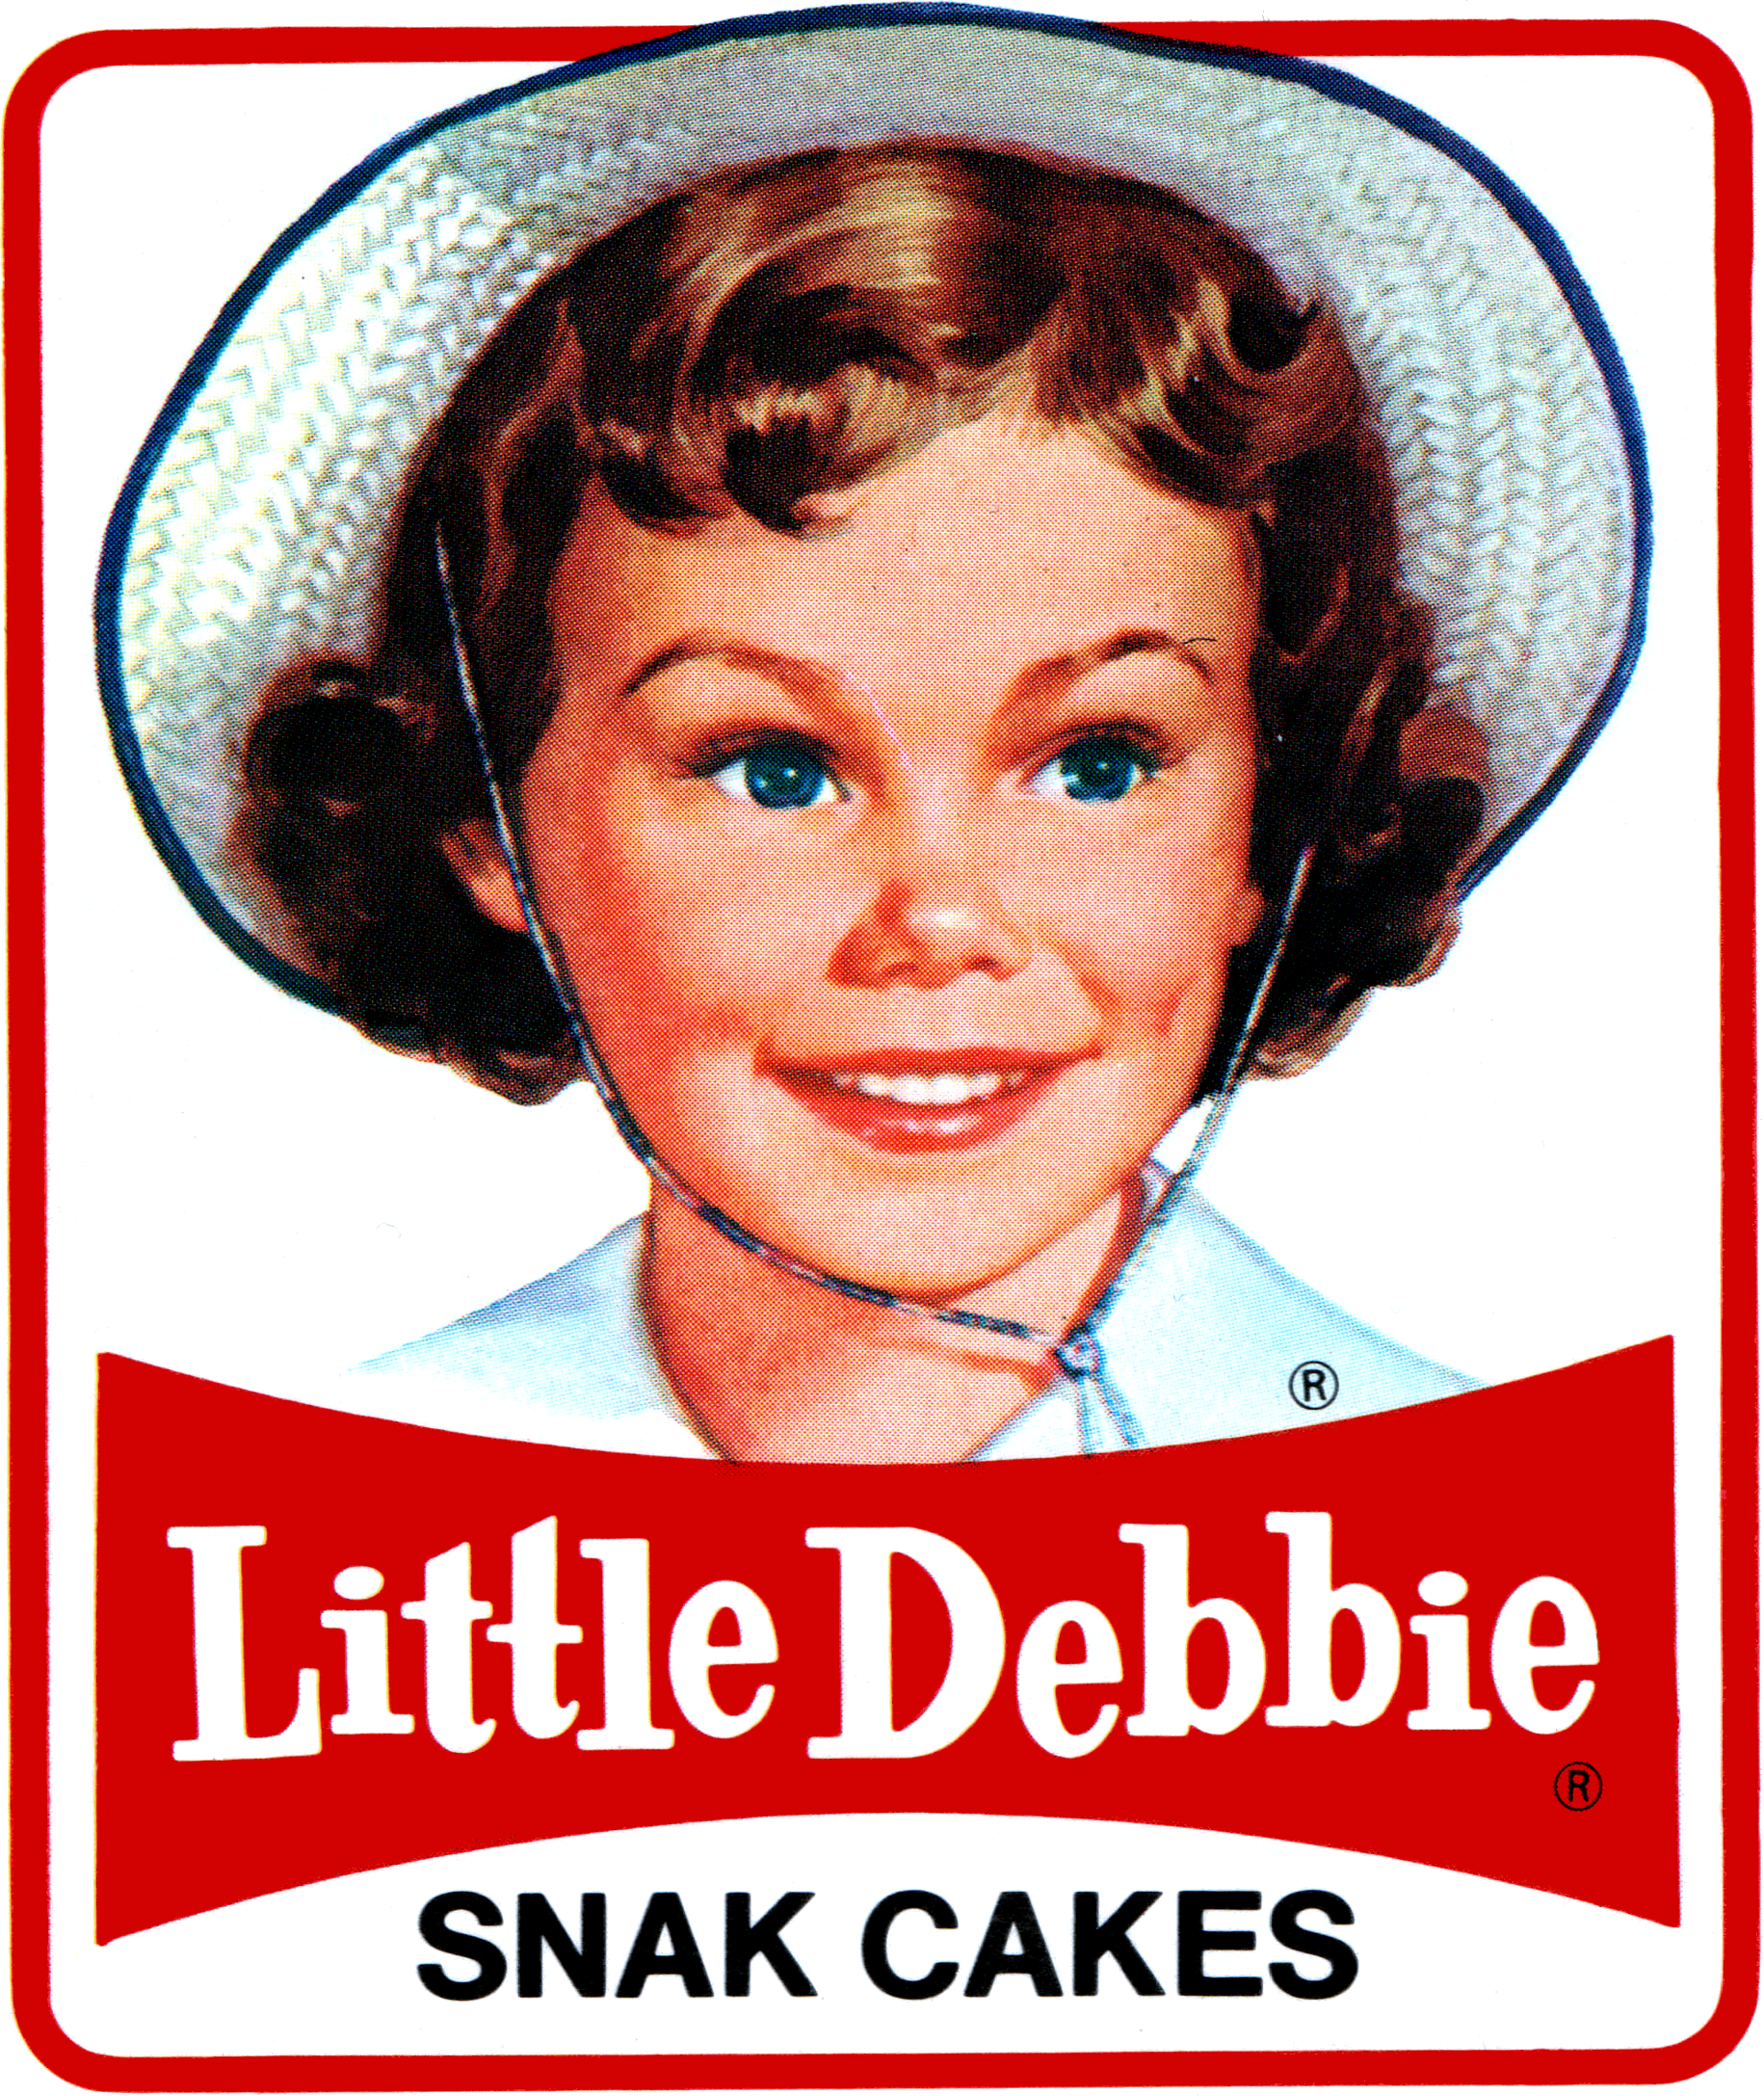 Image - Little Debbie 1983.png - Logopedia, the logo and ...